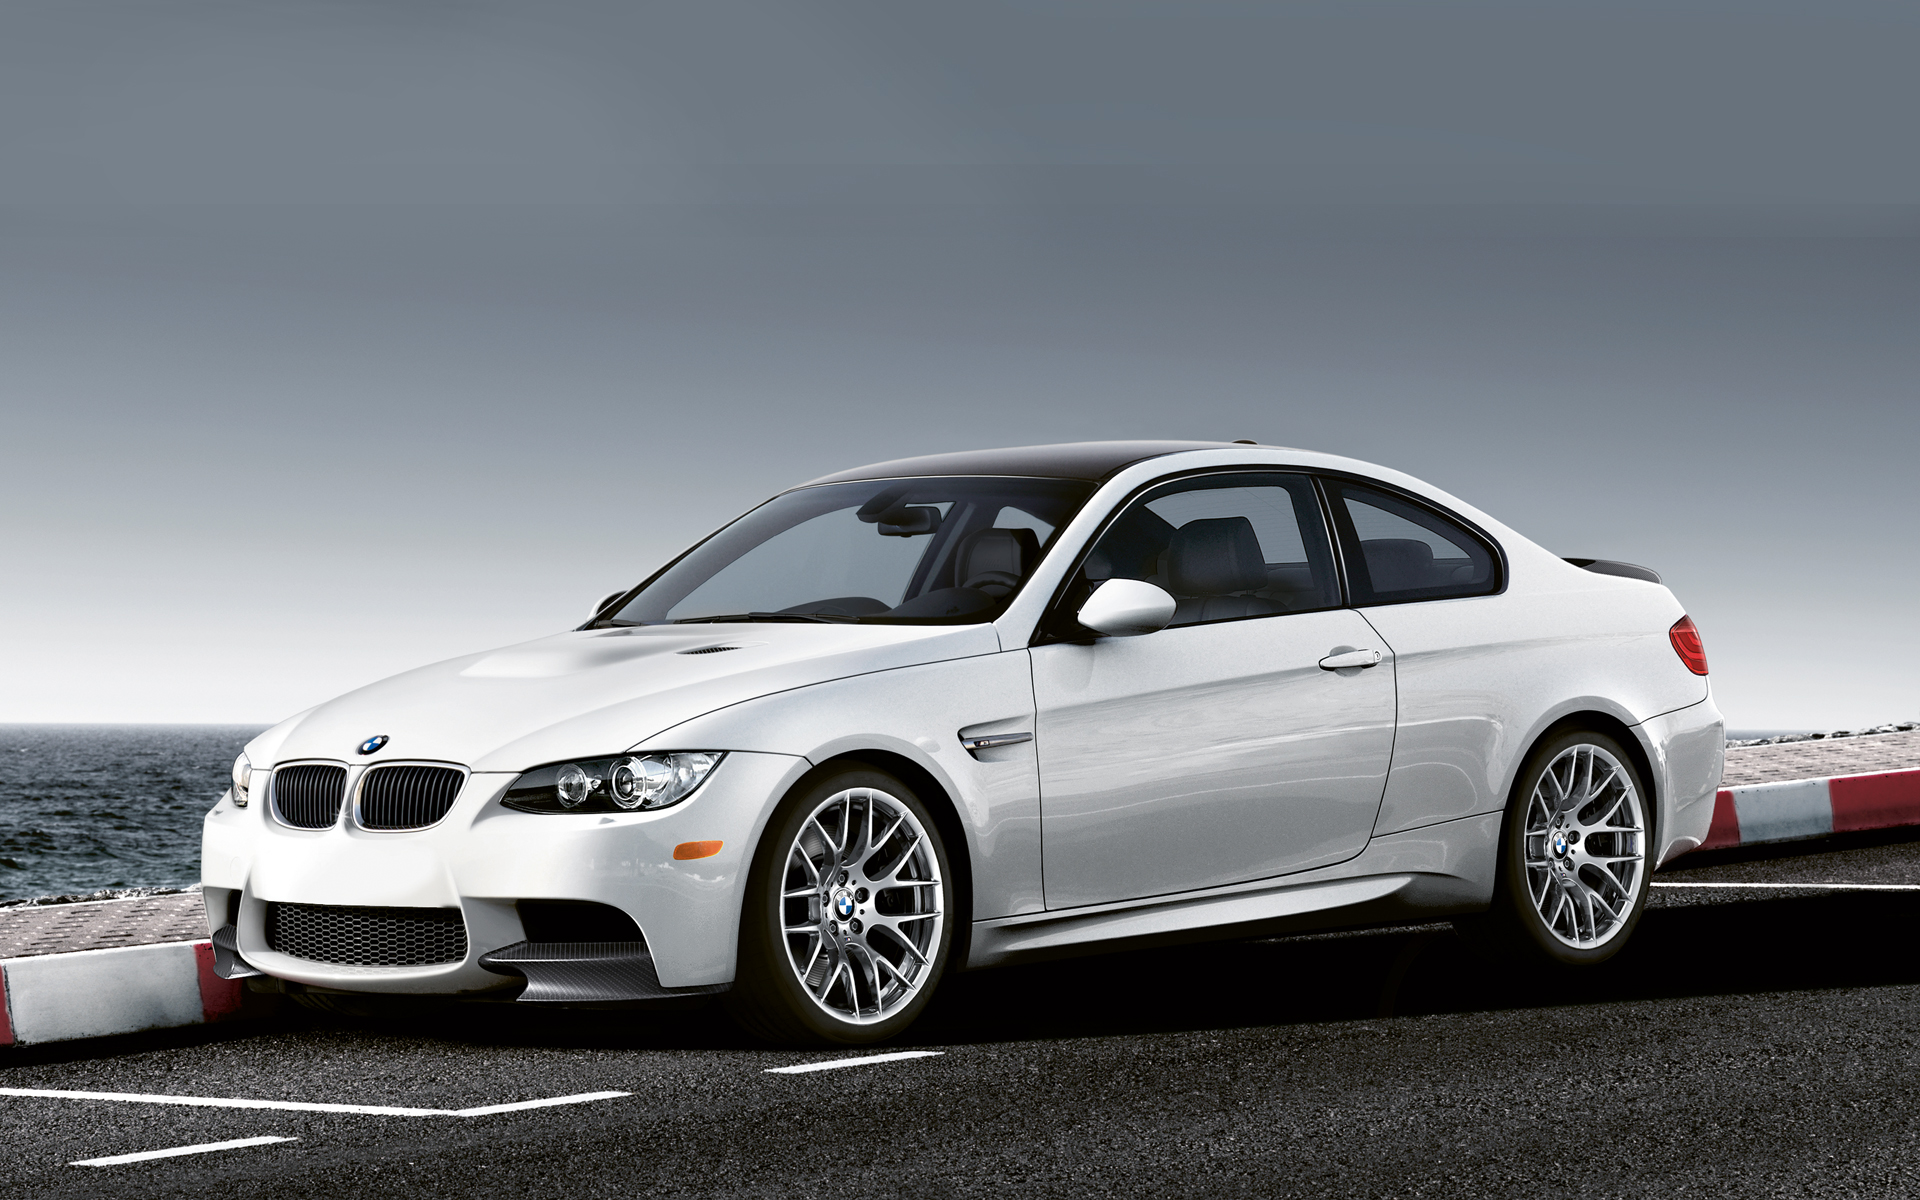 The Bmw E92 M3 Is Completely Sold Out With New M3 M4 Still A Year Away Downshift Autos